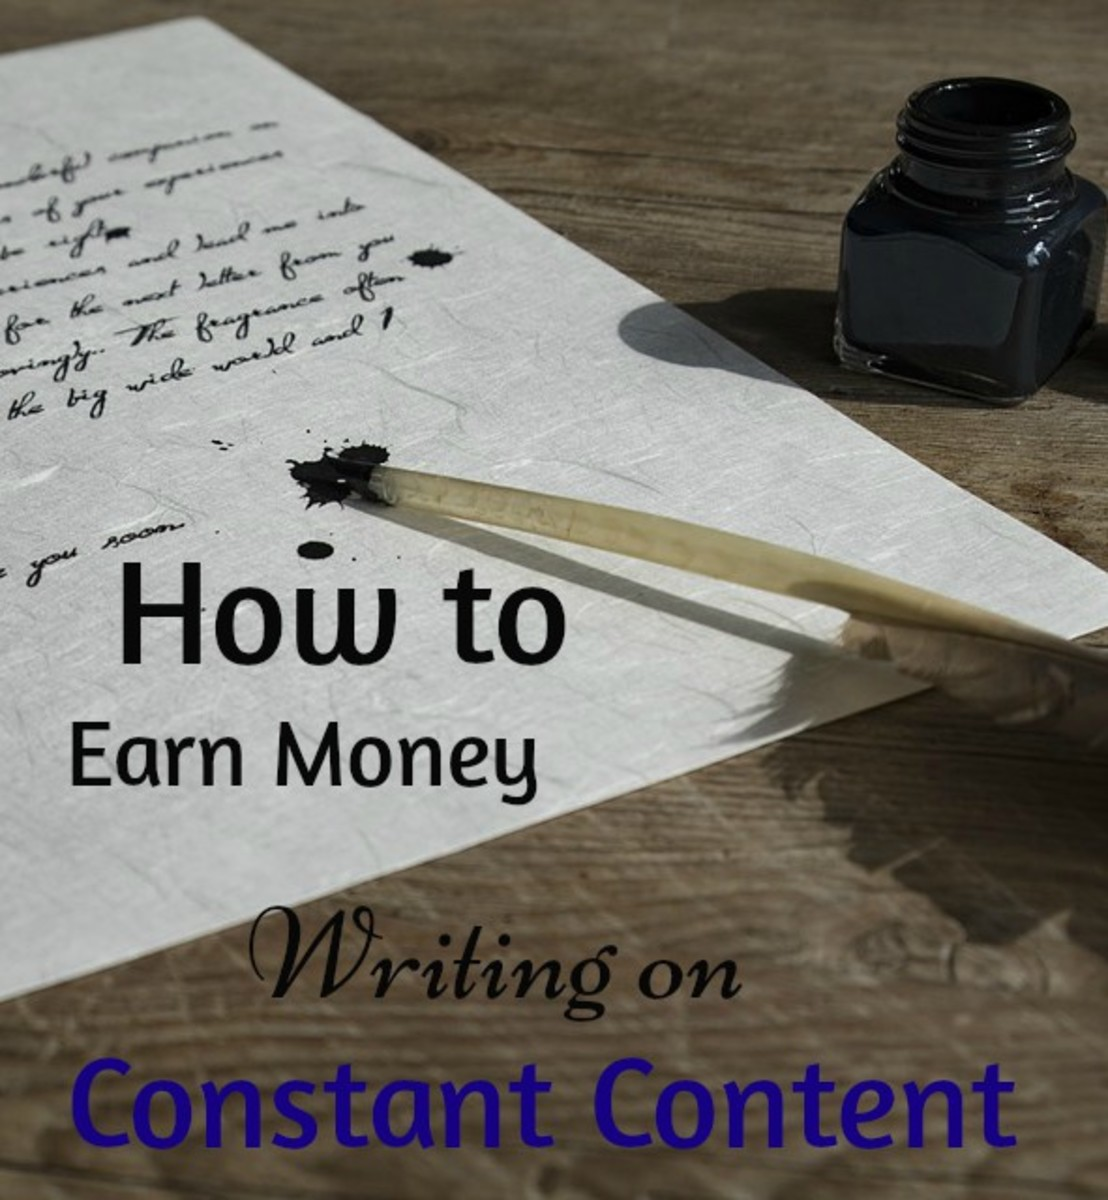 Constant Content Review – Writer's Perspective